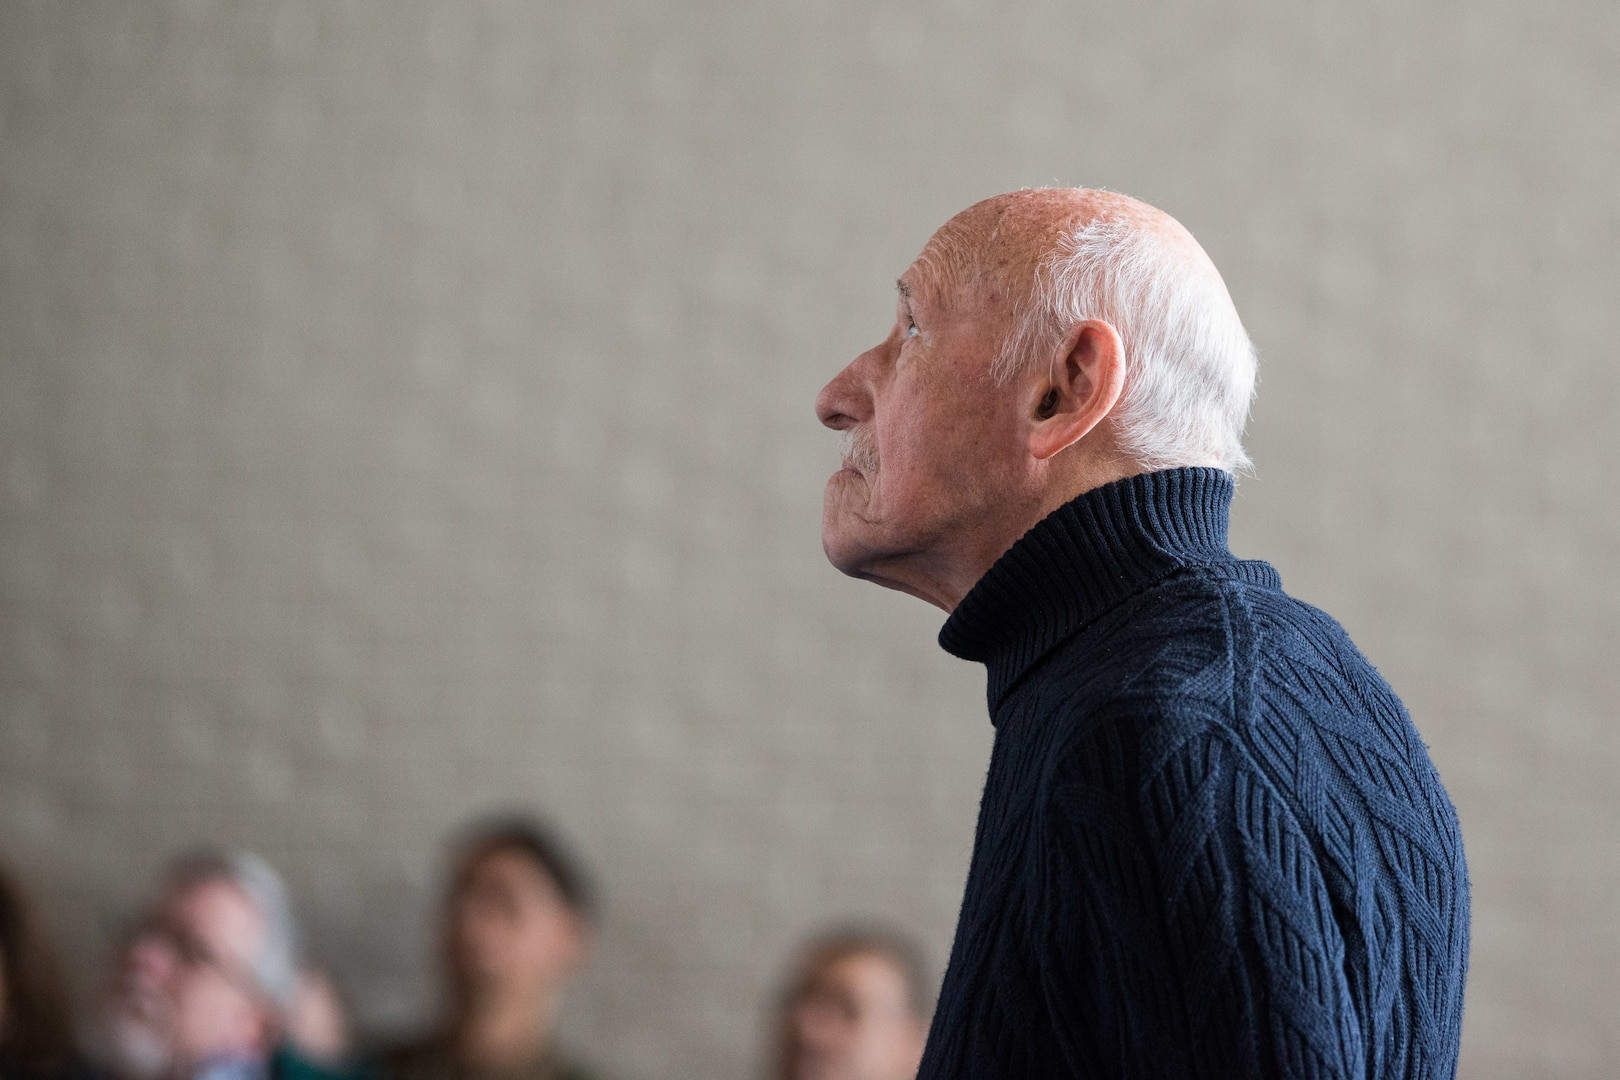 Paul Sobol, survivor of Auschwitz Concentration Camp, watches presentation about horrors of Holocaust during special Holocaust Remembrance Day observance, April 12, 2019, at Supreme Headquarters Allied Powers Europe, Belgium (U.S. Army/Pierre-Etienne Courtejoie)